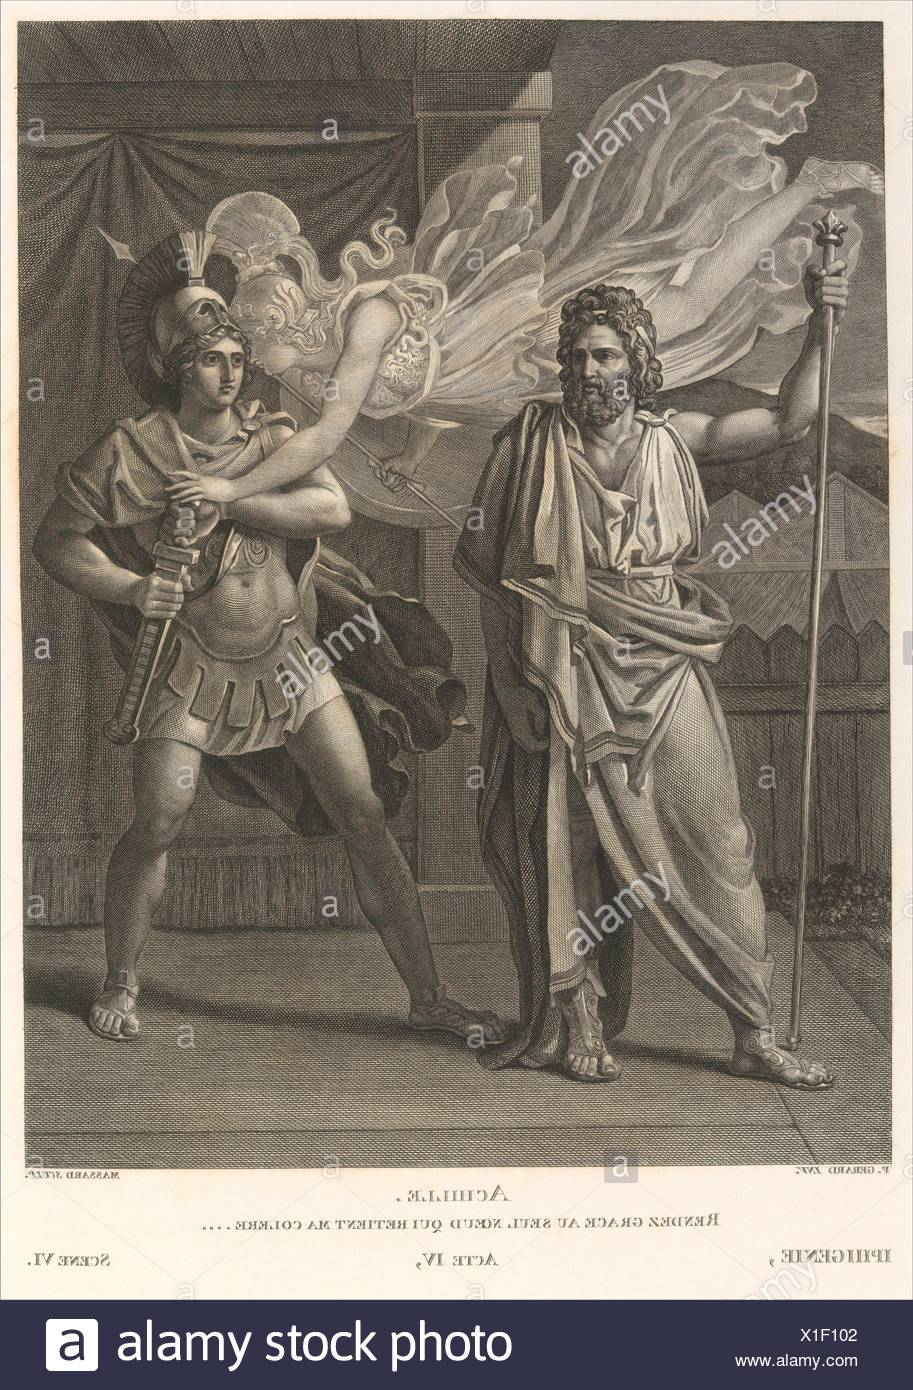 Oeuvres de Jean Racine. Author: Written by Jean Racine (French, baptized 1639-1699 Paris); Illustrator: Illustrated by Pierre Paul Prud'hon (French, - Stock Image